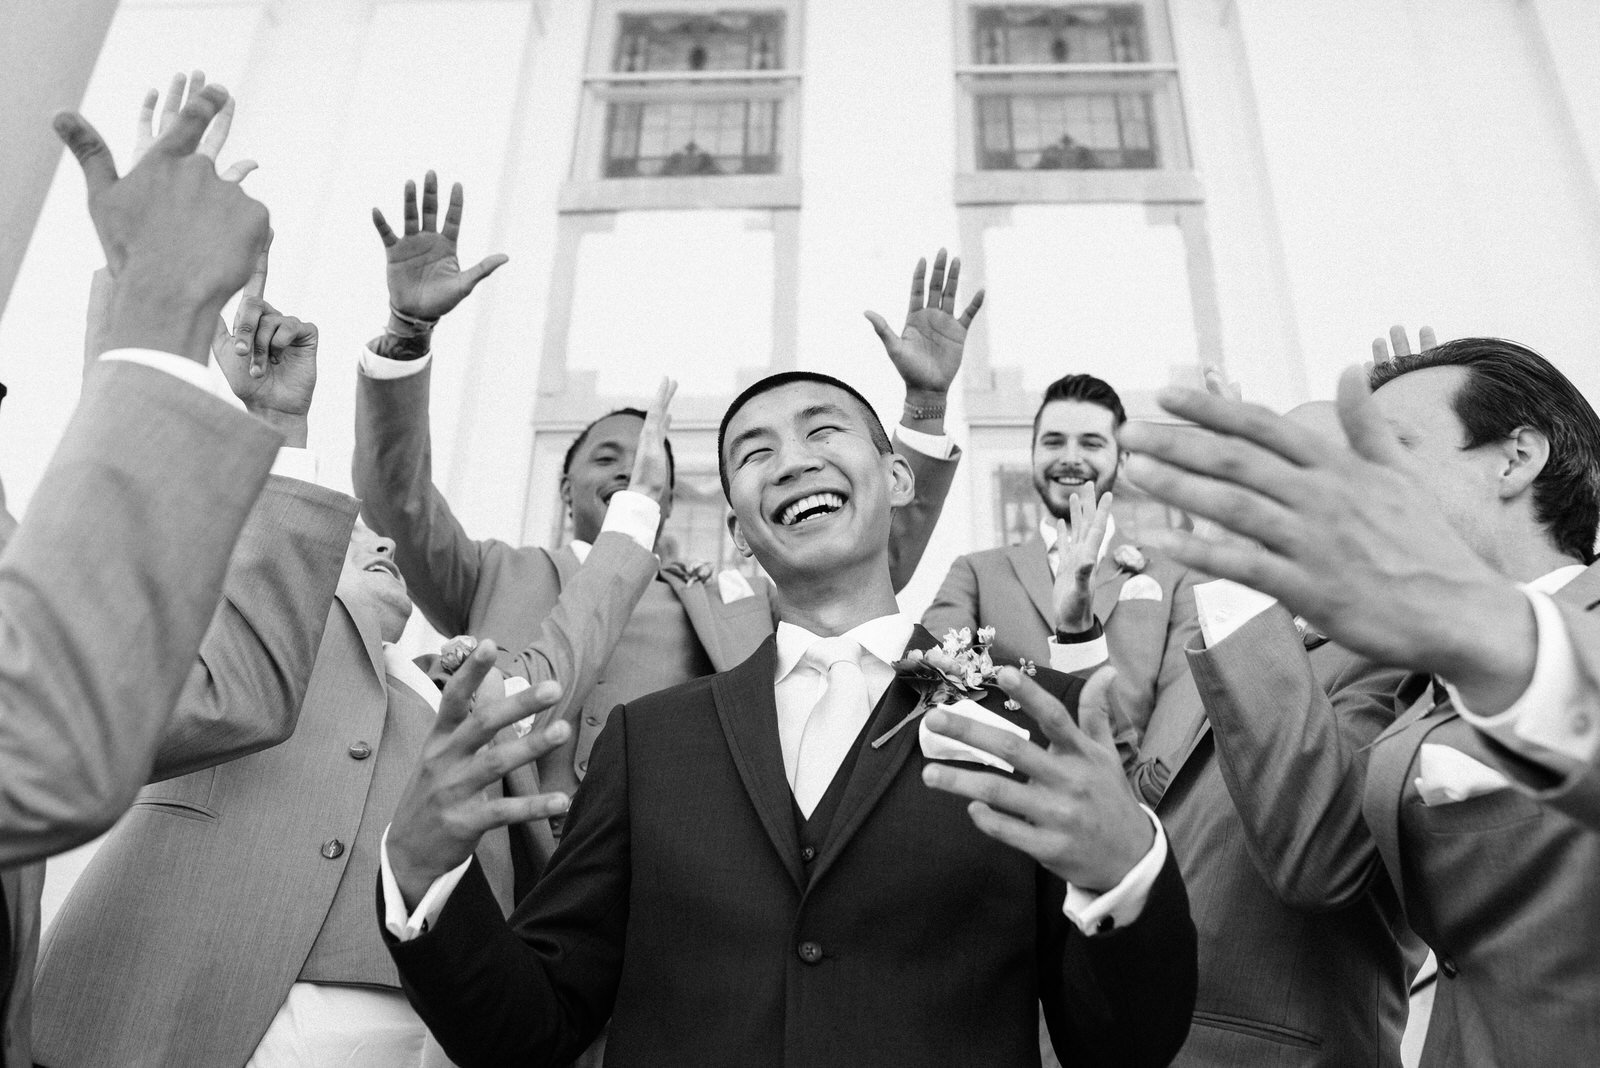 groom laughs and celebrates with group of groomsmen around him all raising their hands at The Galerie Venue Kentucky